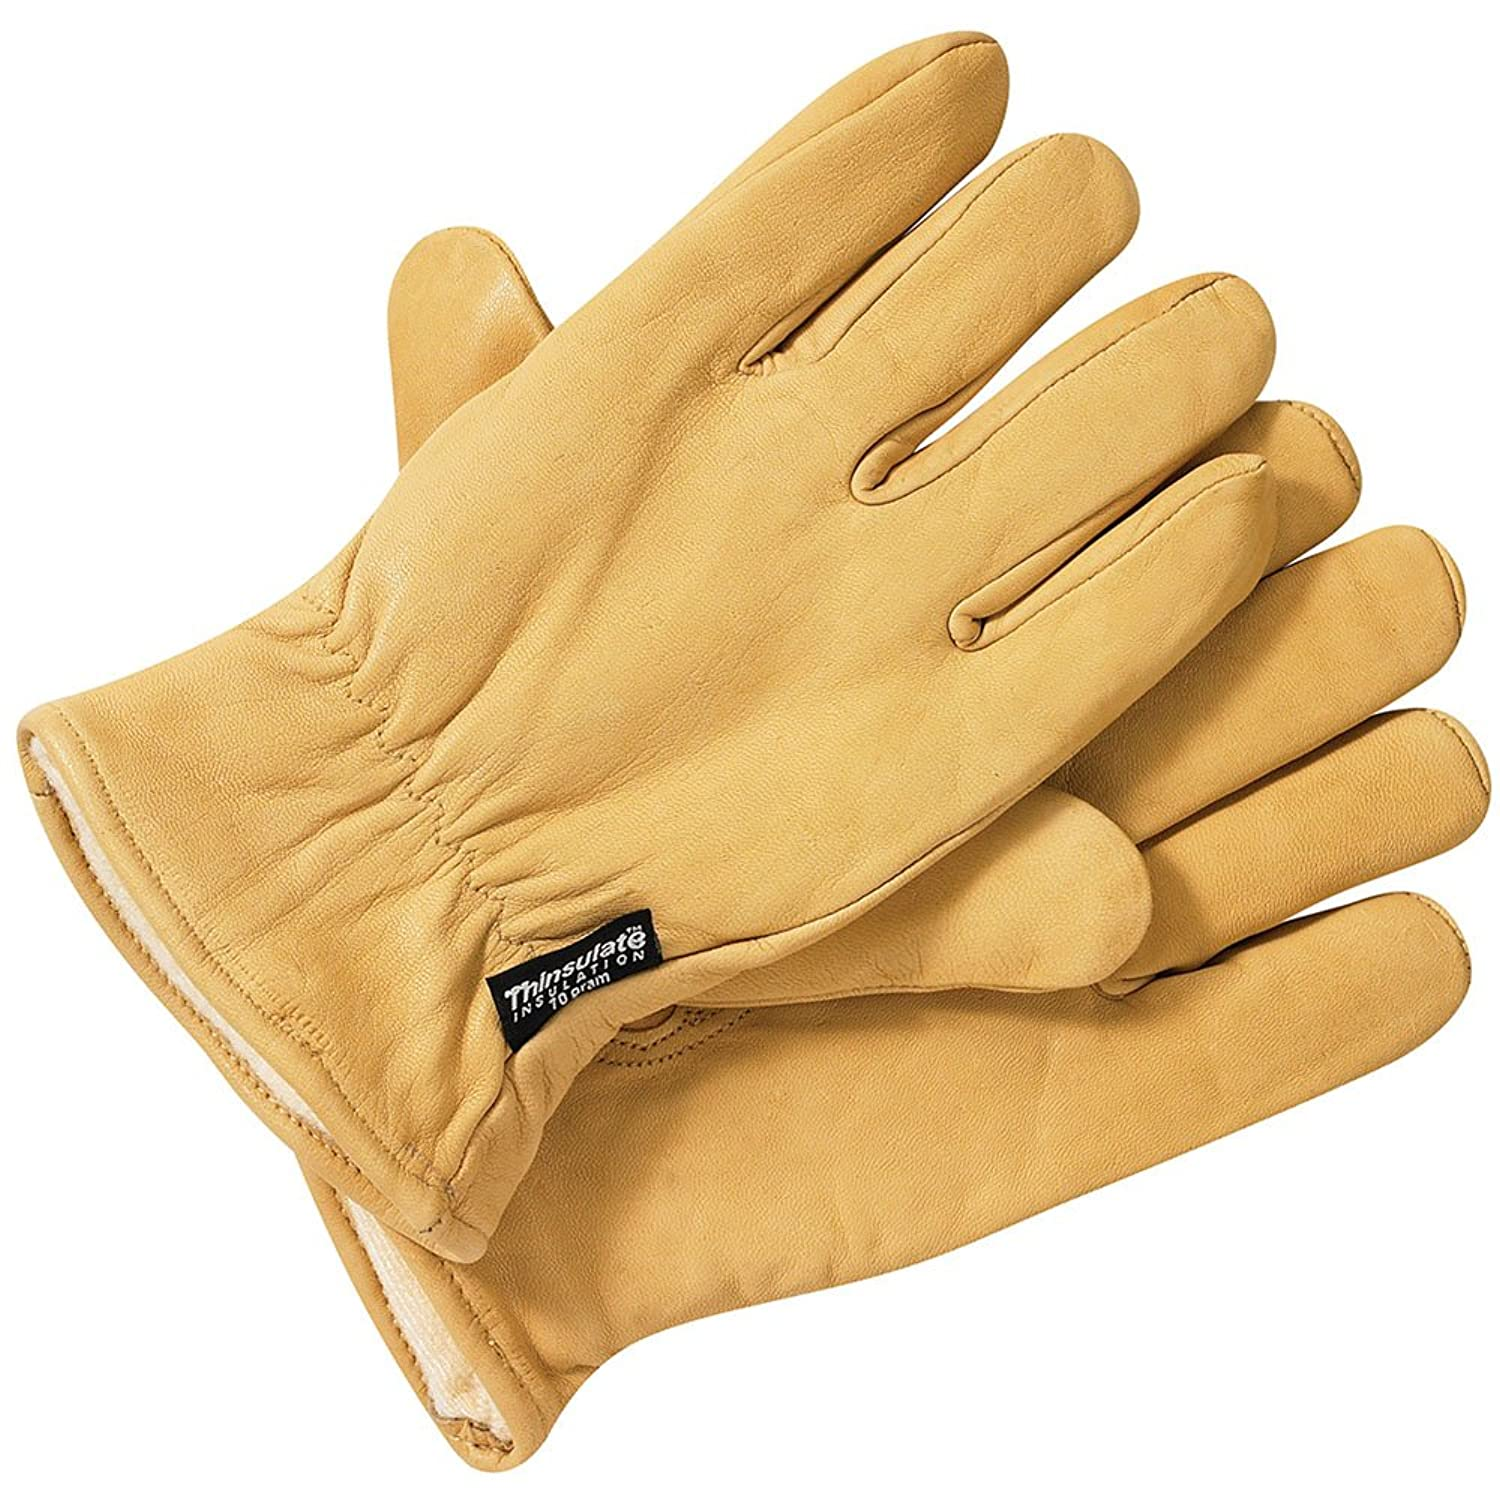 Leather work gloves with thinsulate lining - Leather Work Gloves With Thinsulate Lining 12